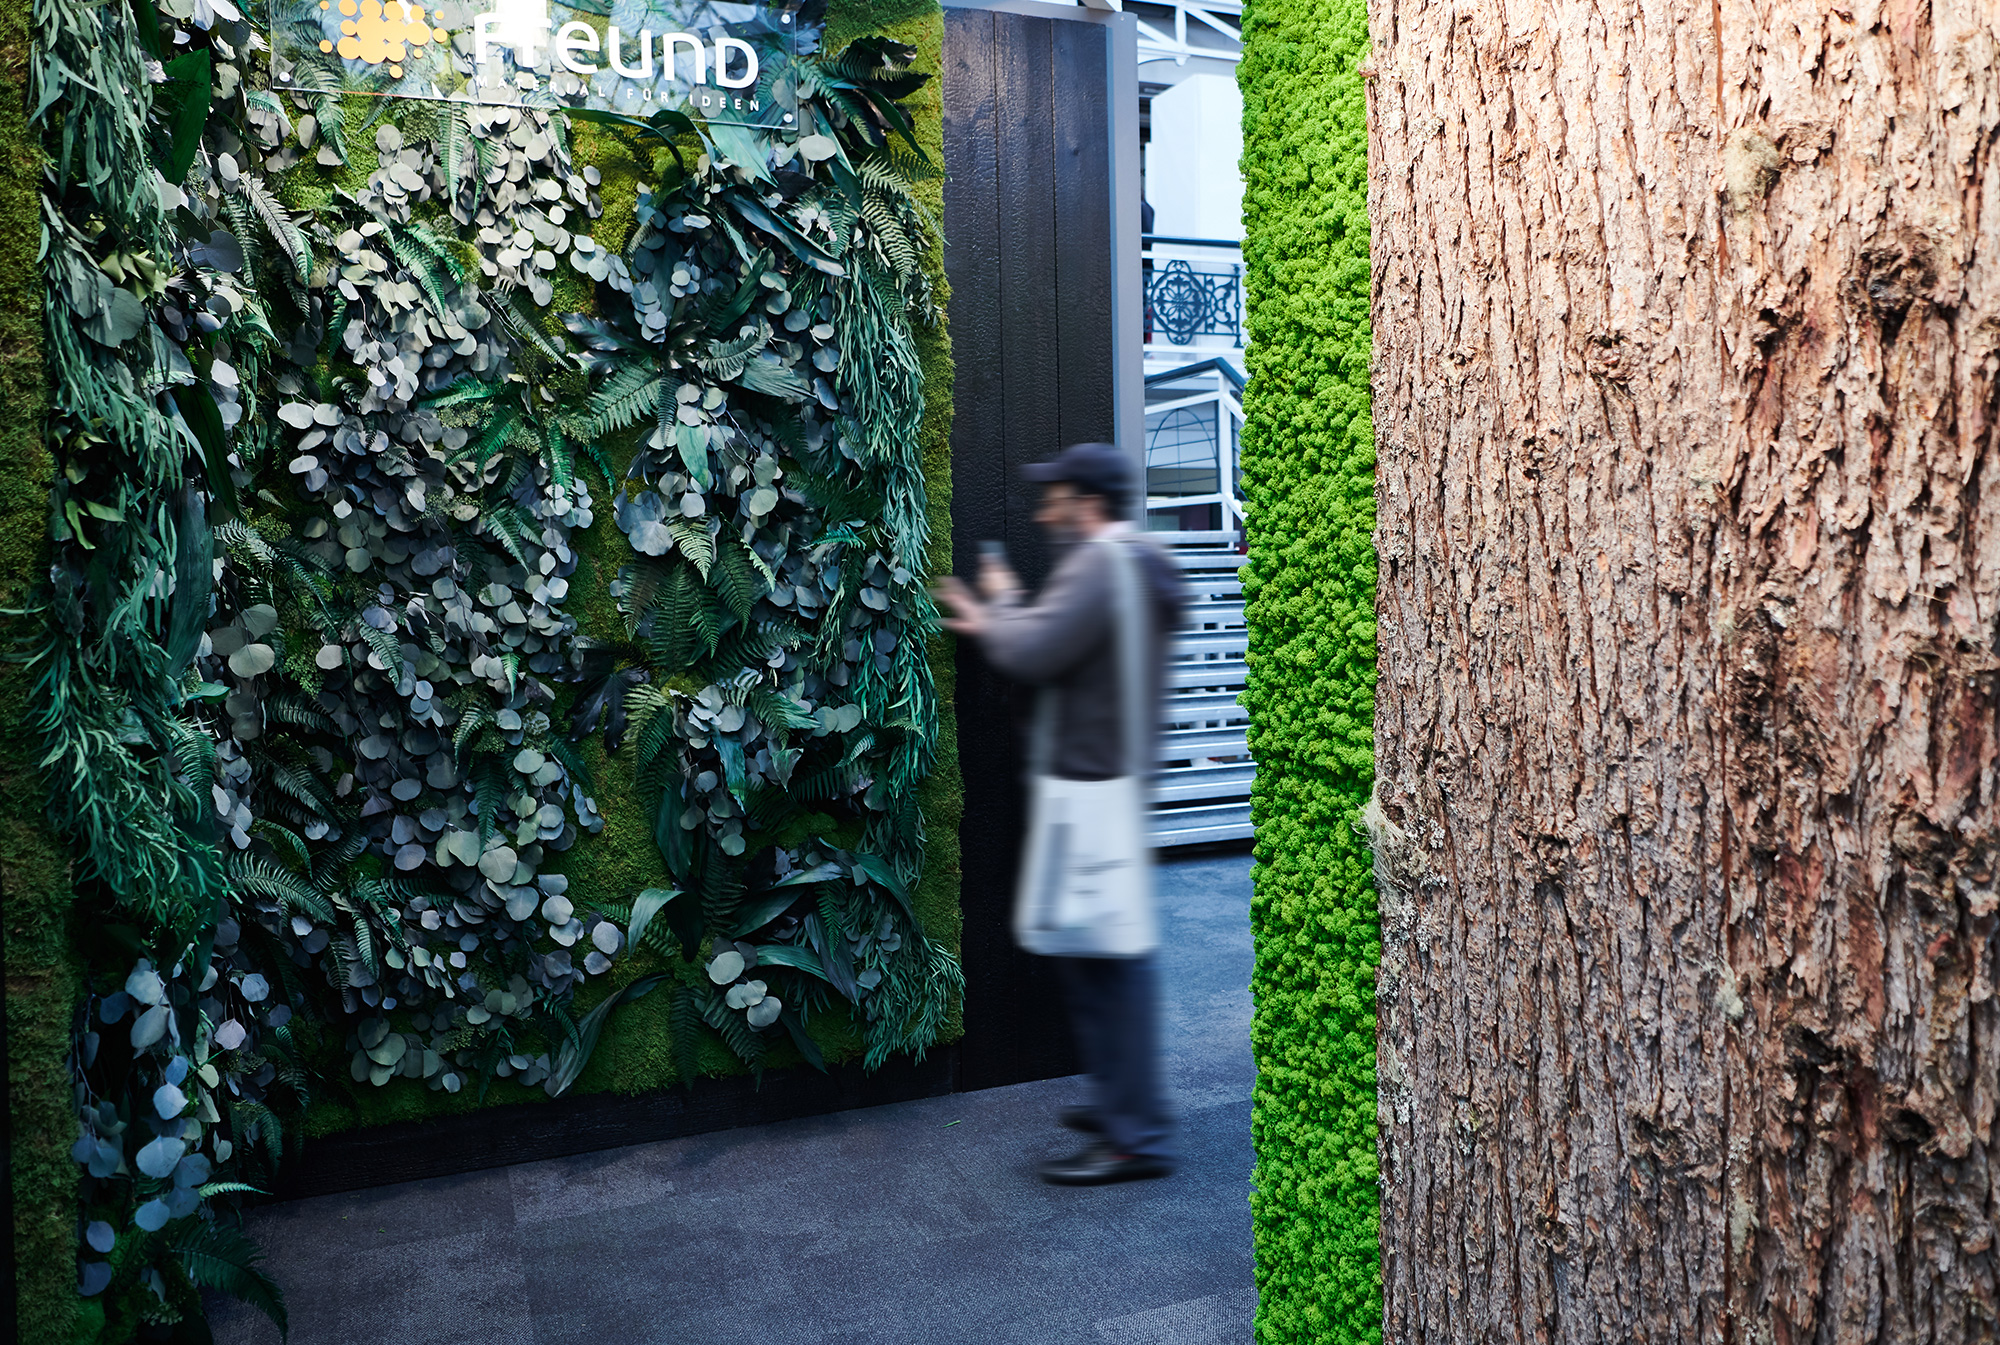 Greenwood Jungle moss wall for own exhibition presence, preserved plant wall, lush plants, jungle aesthetic, London